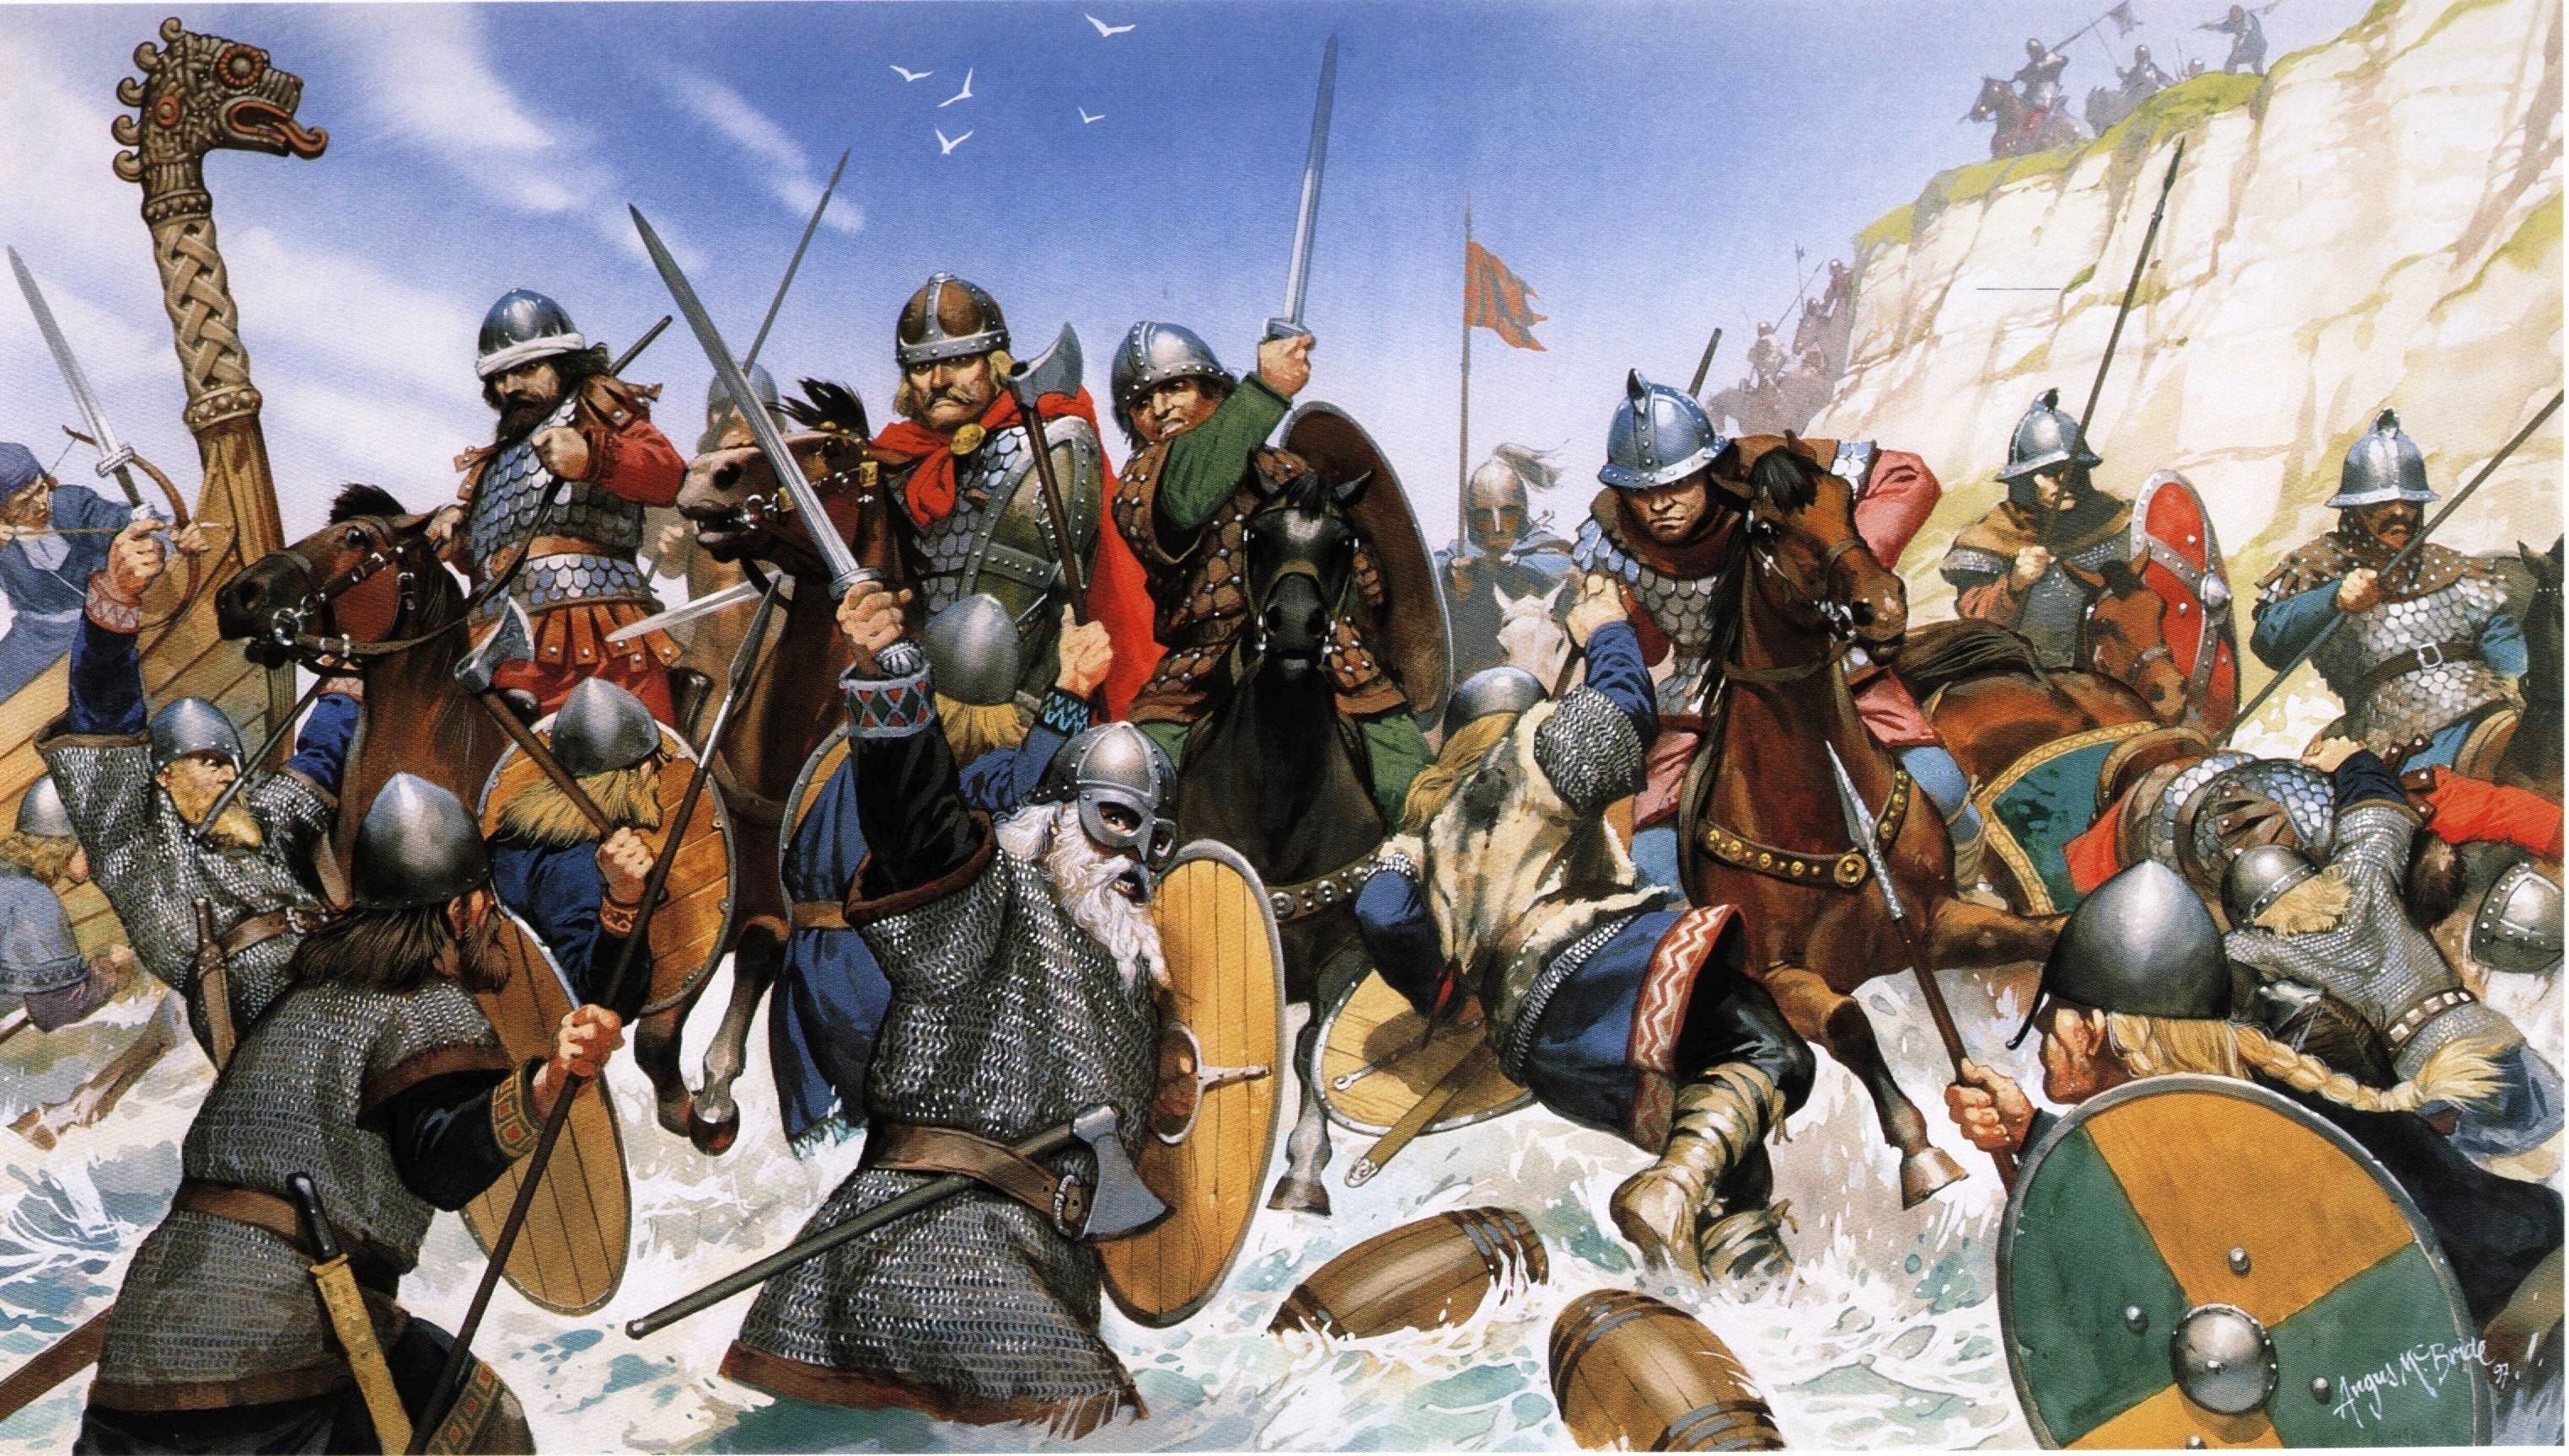 Pin By Daniel Brock On Rycari Voiny Voennye Anglo Saxon War Art Medieval